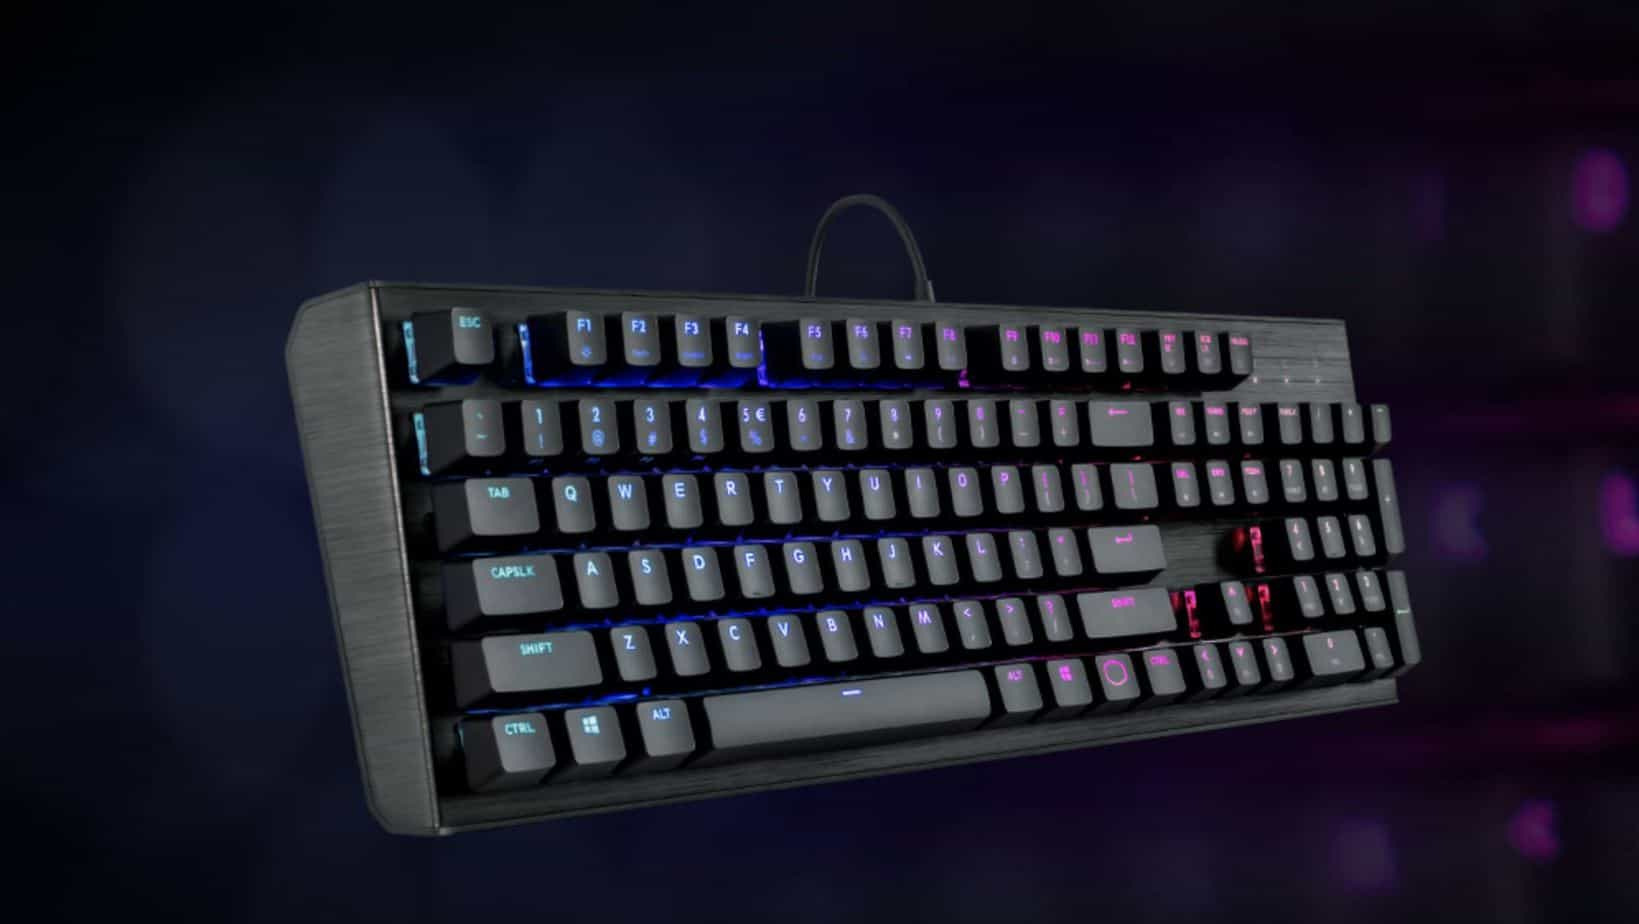 Coolermaster CK552 review